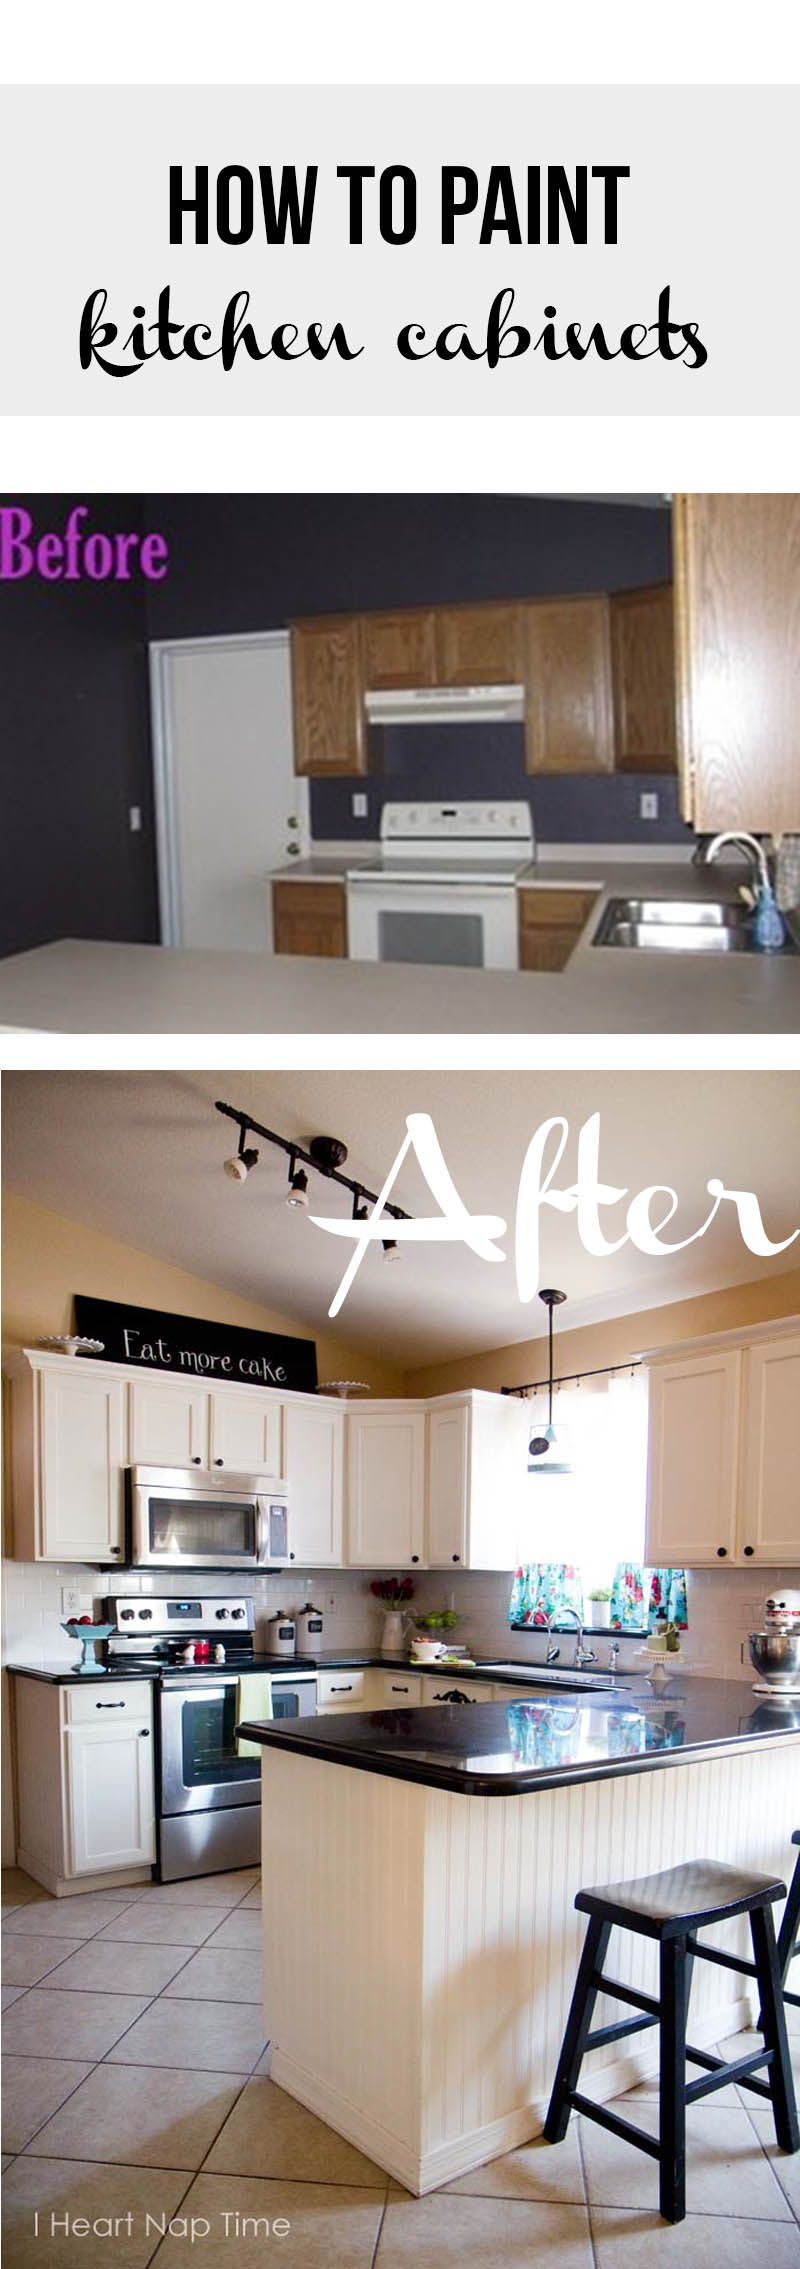 How To Paint Kitchen Cabinets White I Heart Nap Time Painting Kitchen Cabinets White Kitchen Diy Makeover Painting Kitchen Cabinets